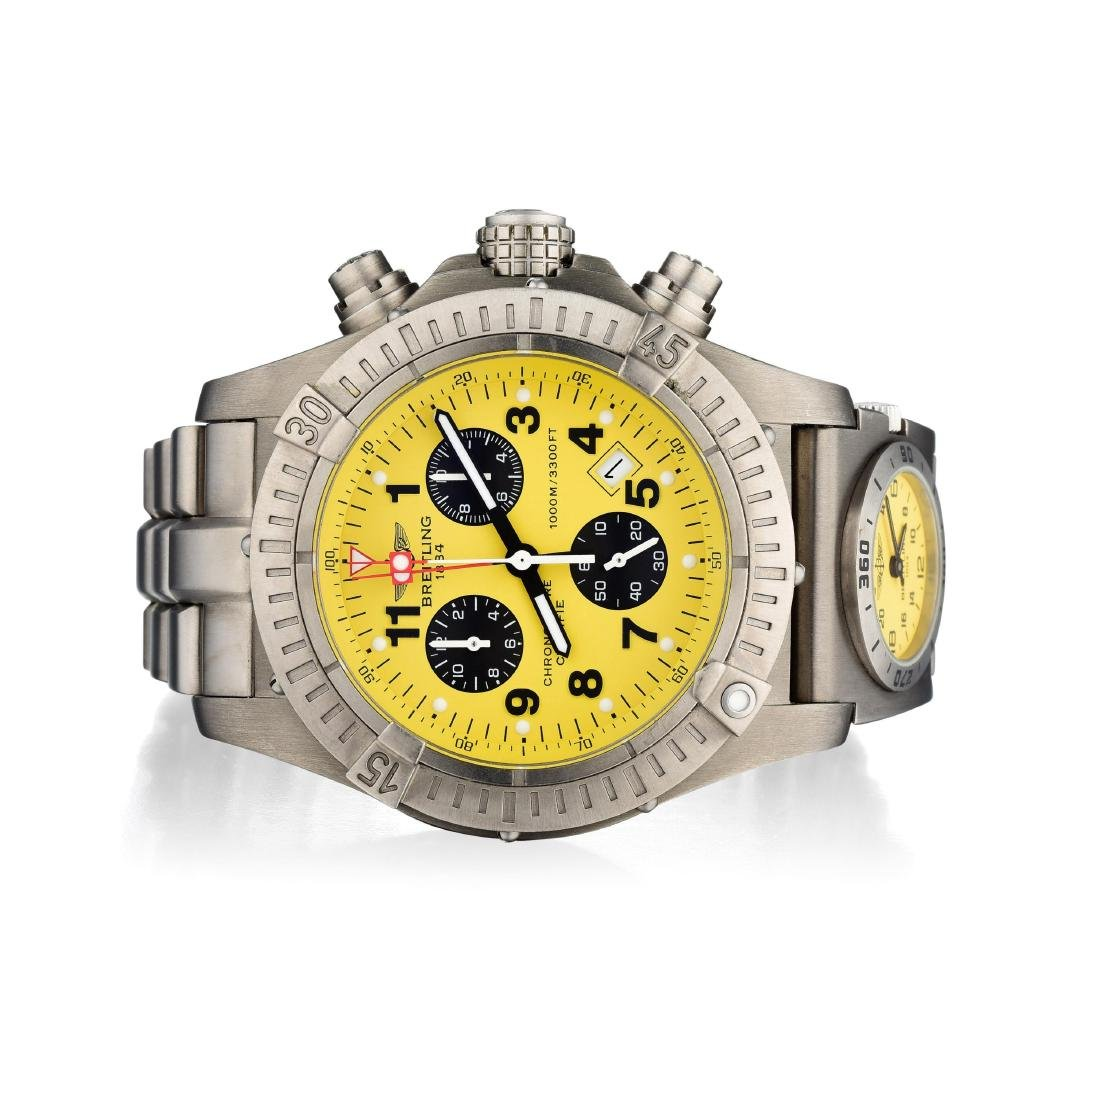 Breitling Avenger Gents Titanium Chronograph Watch